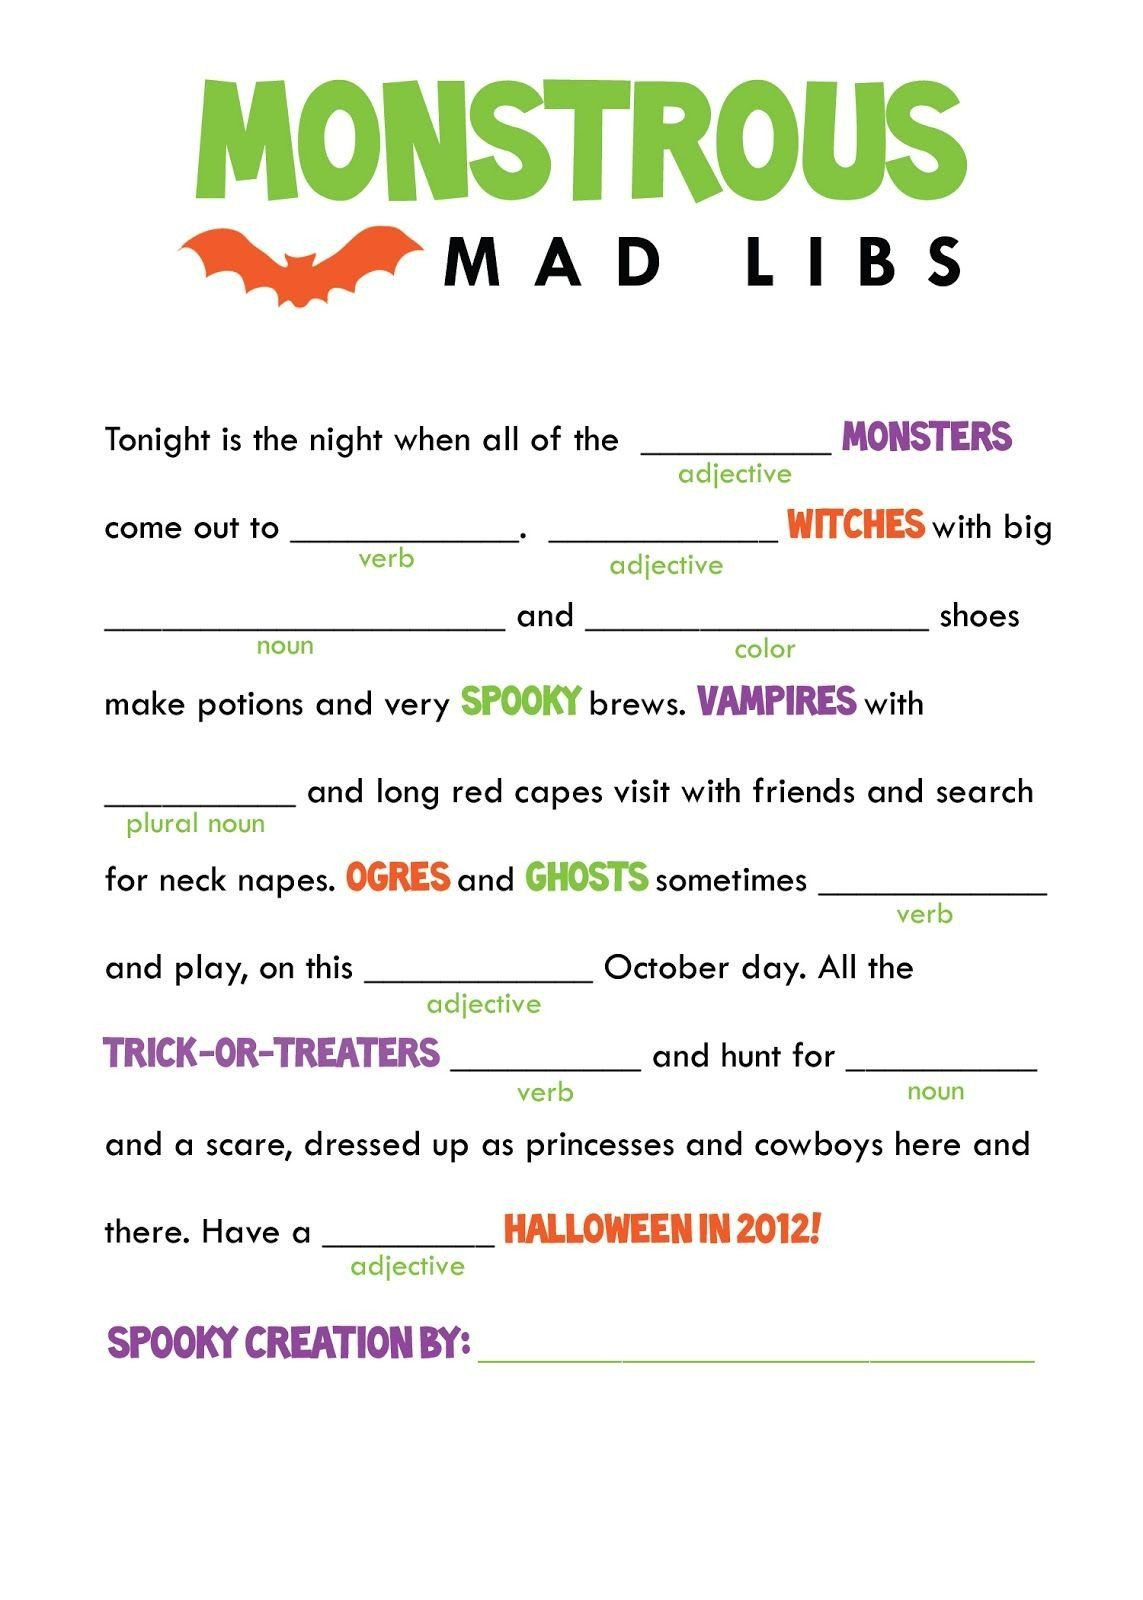 5th Grade Halloween Worksheets Kids Mad Libs Printable